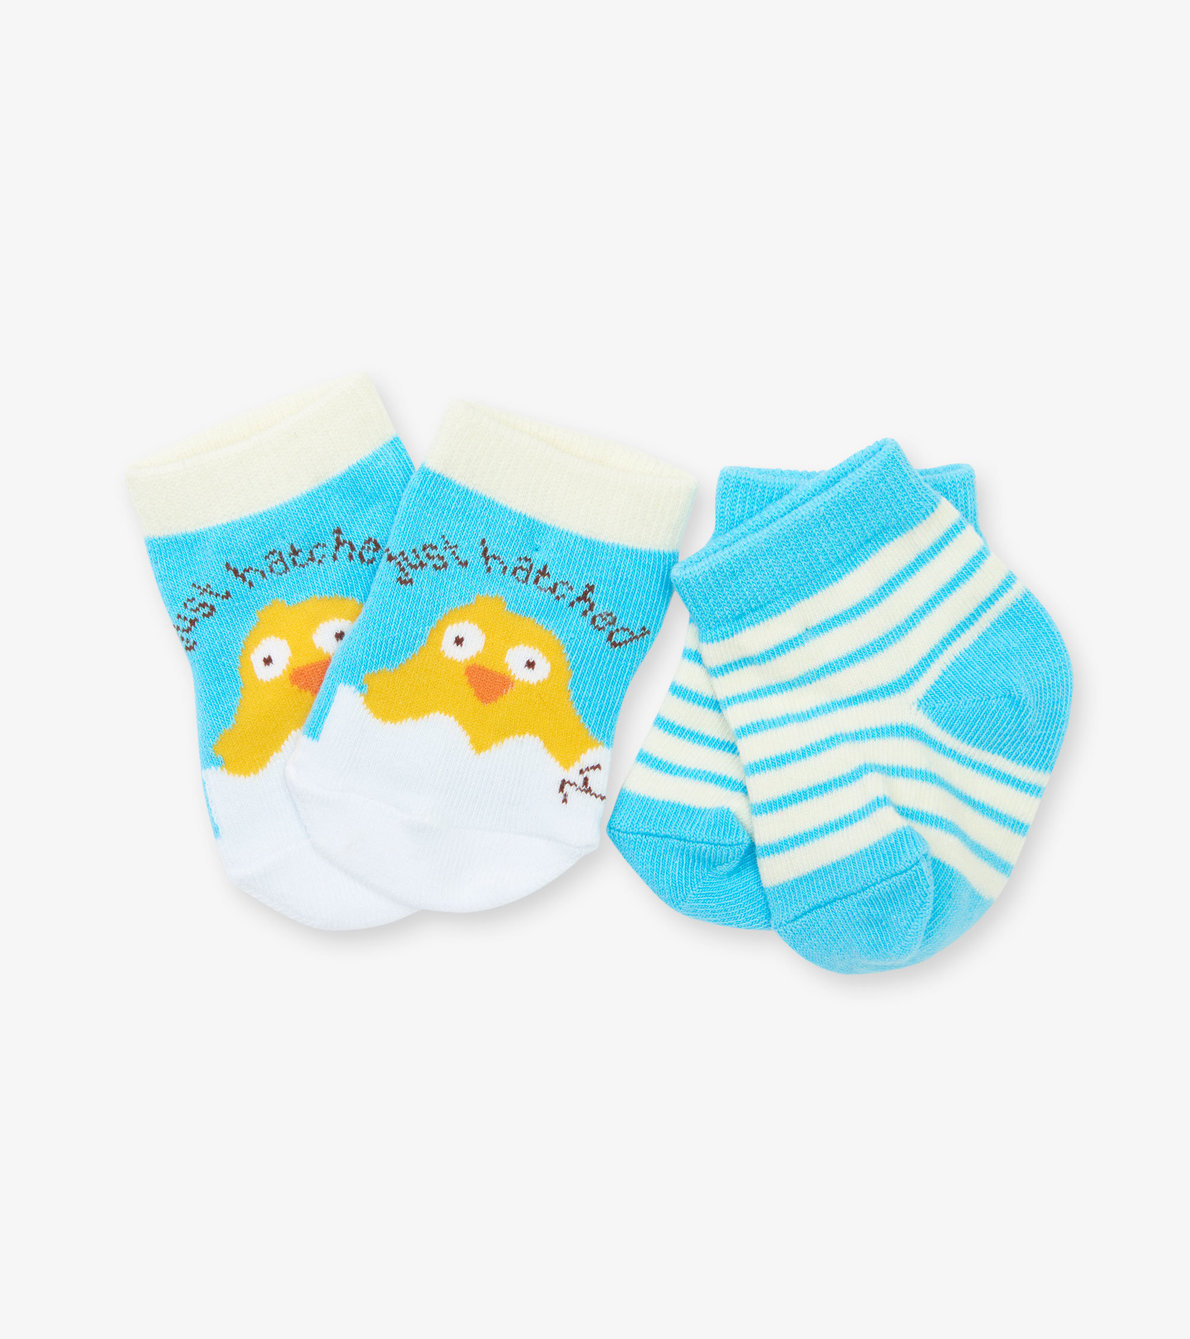 View larger image of Just Hatched 2-Pack Baby Socks